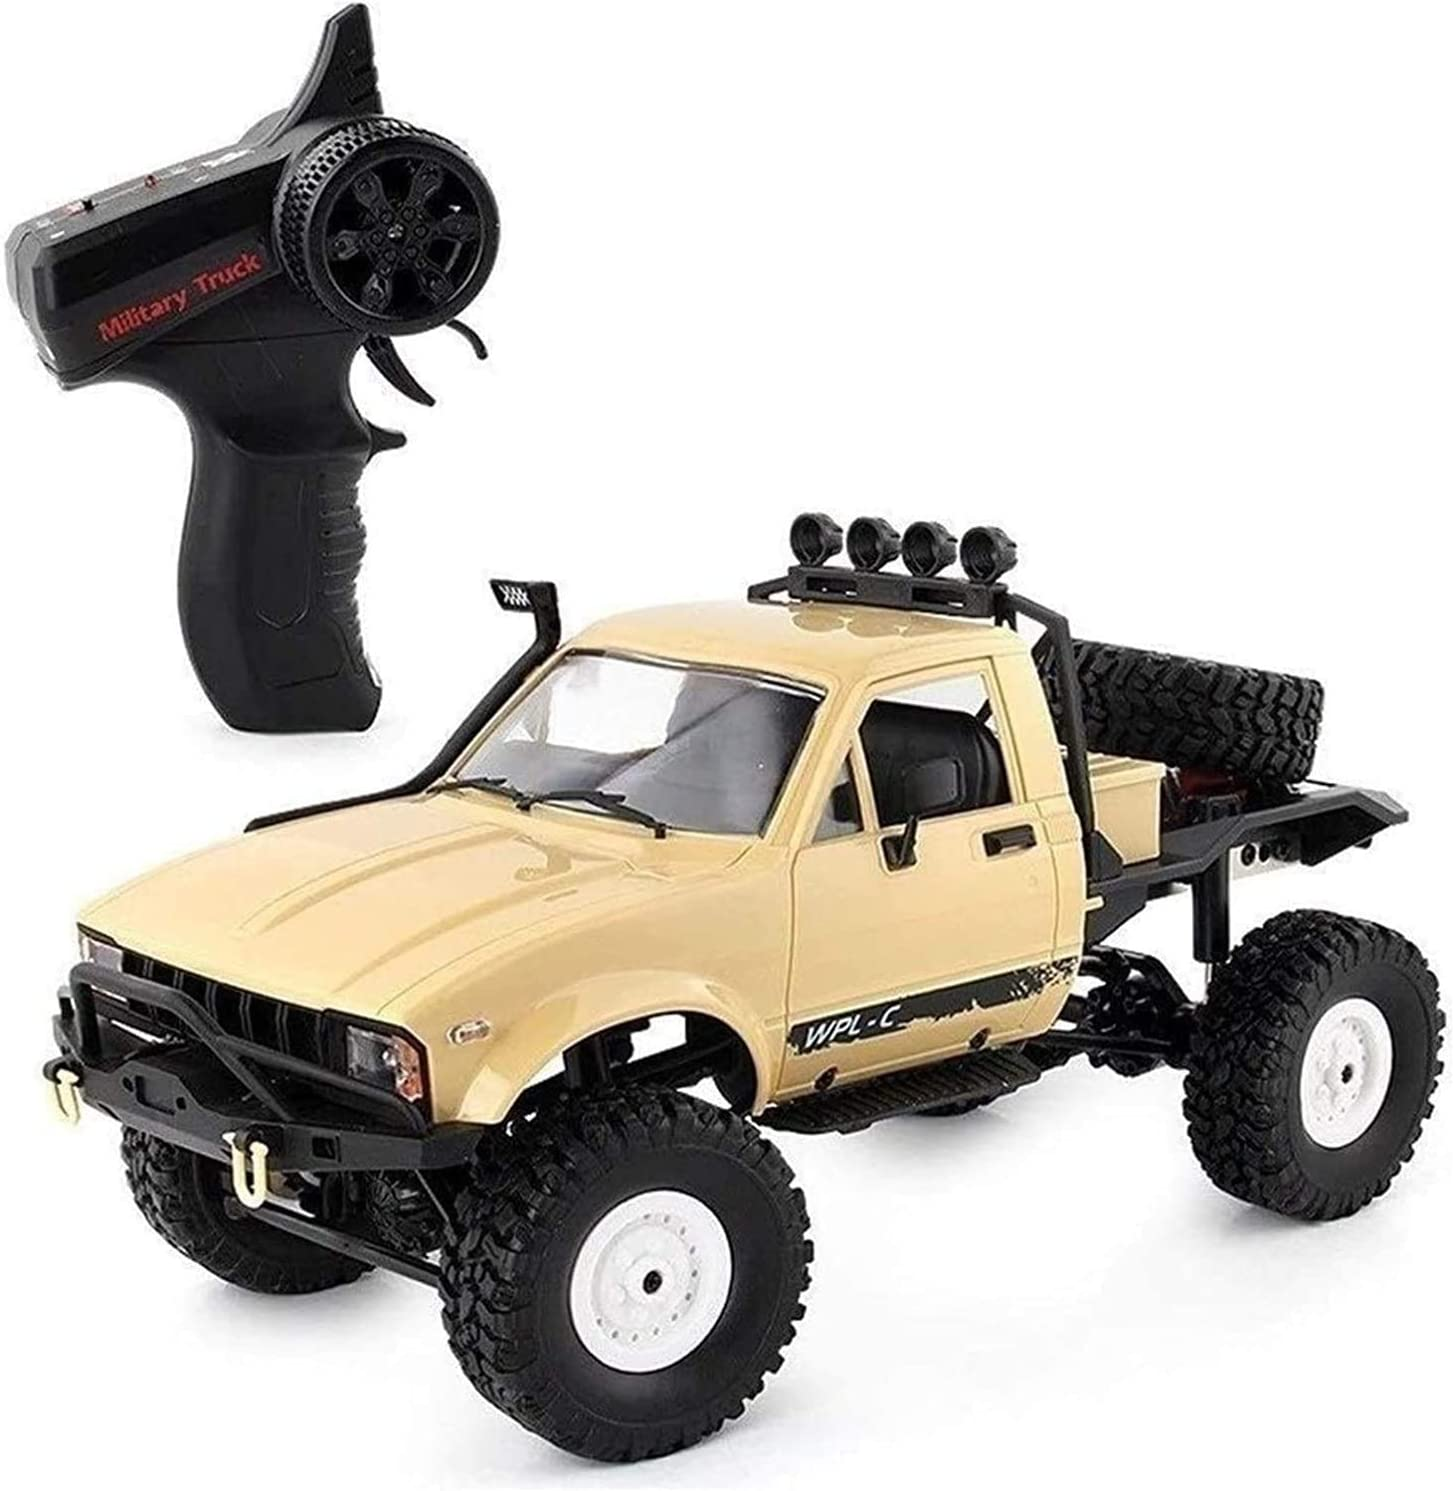 wangch 1:16RC Remote Control Truck 2.4Ghz Manufacturer regenerated Recommended product high Ele Speed 2WD RTR